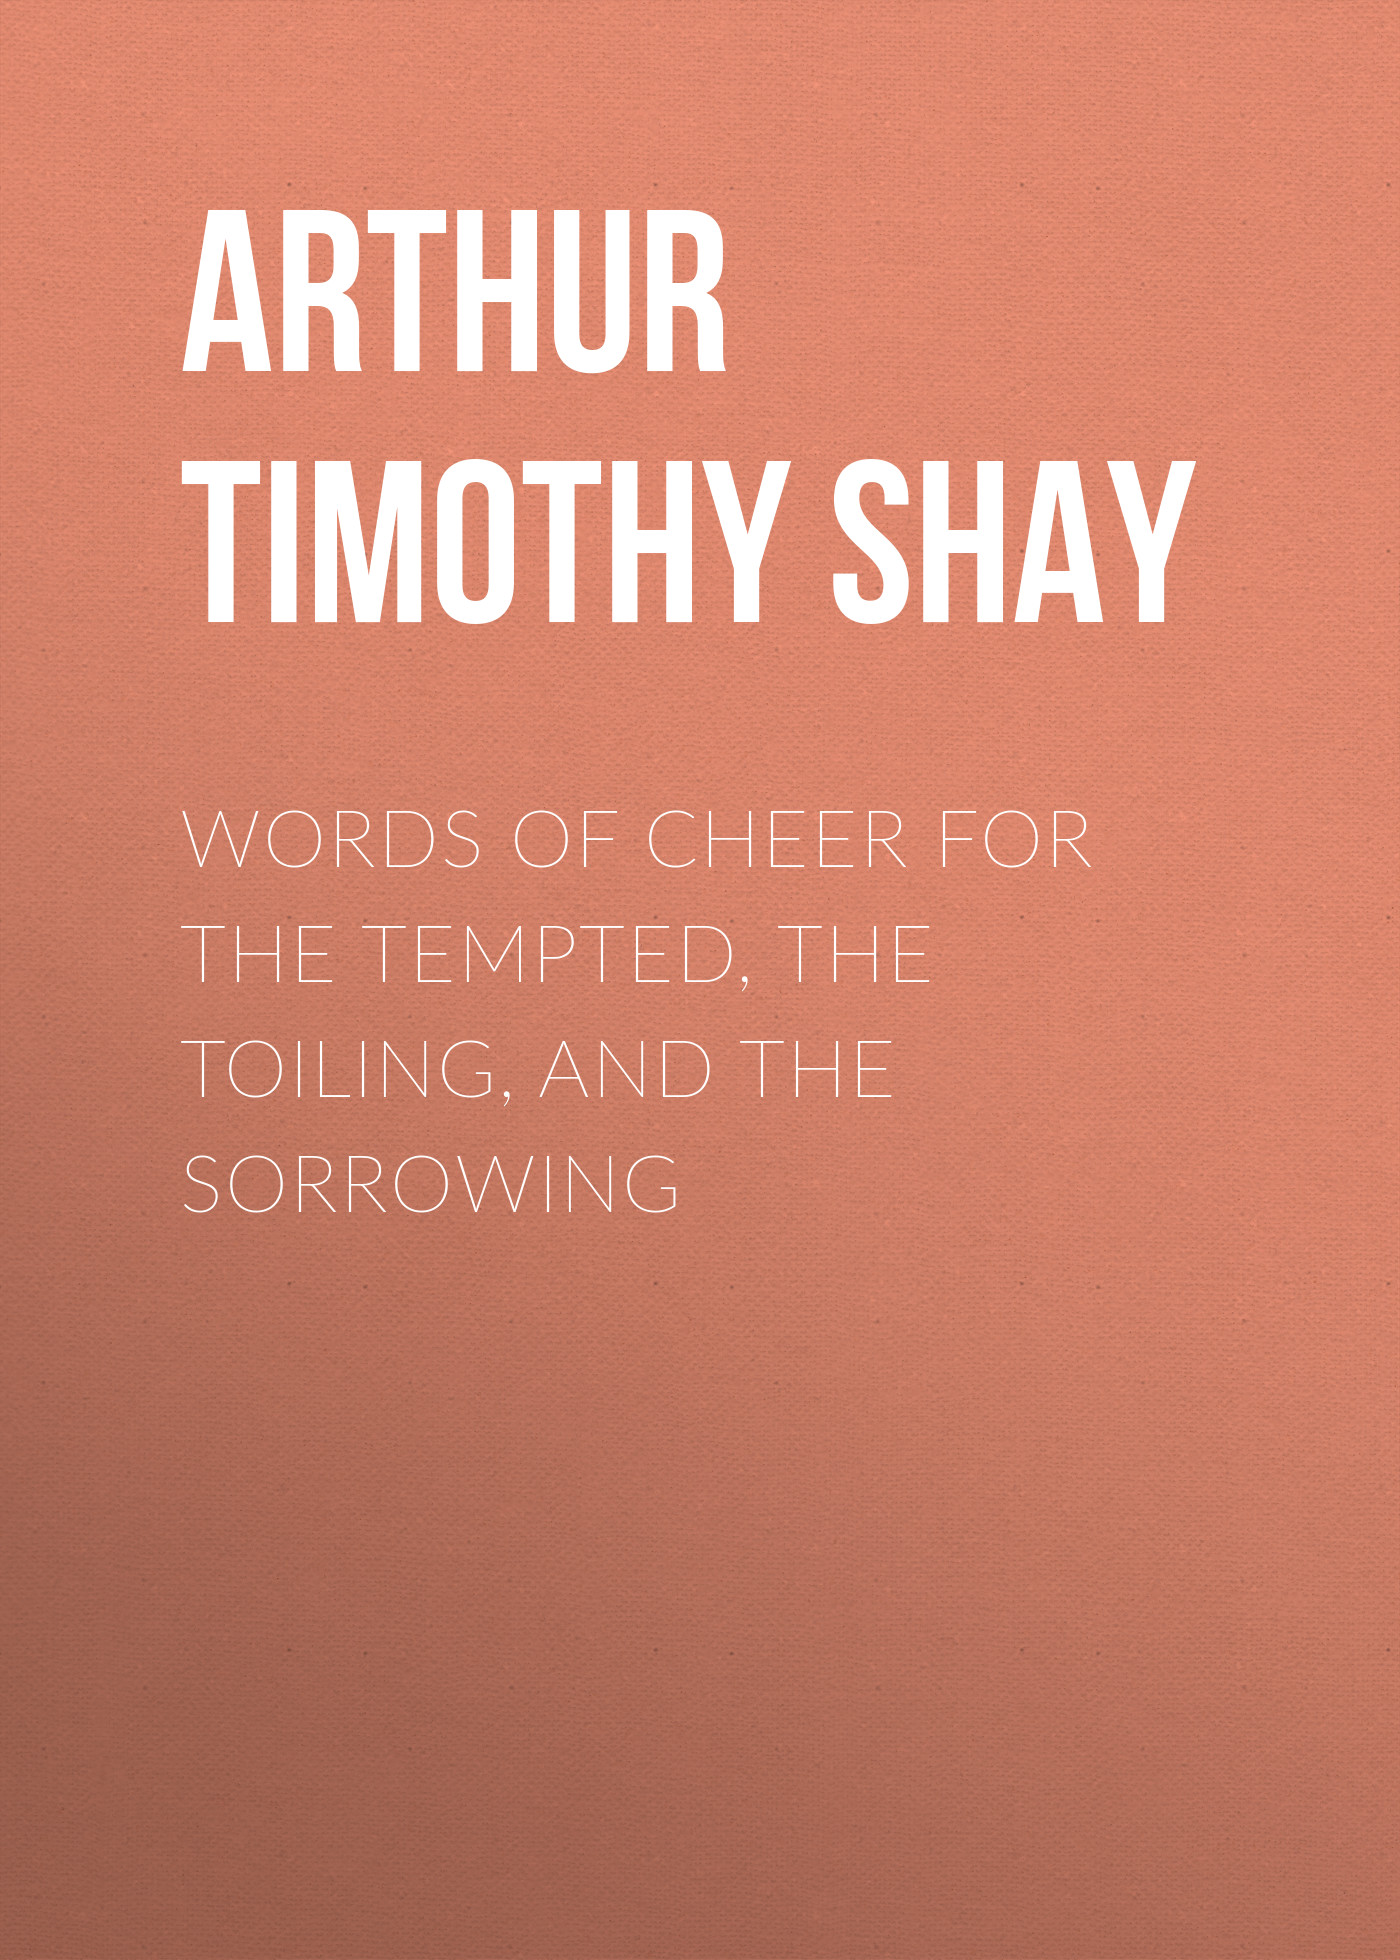 Arthur Timothy Shay Words of Cheer for the Tempted, the Toiling, and the Sorrowing tempted